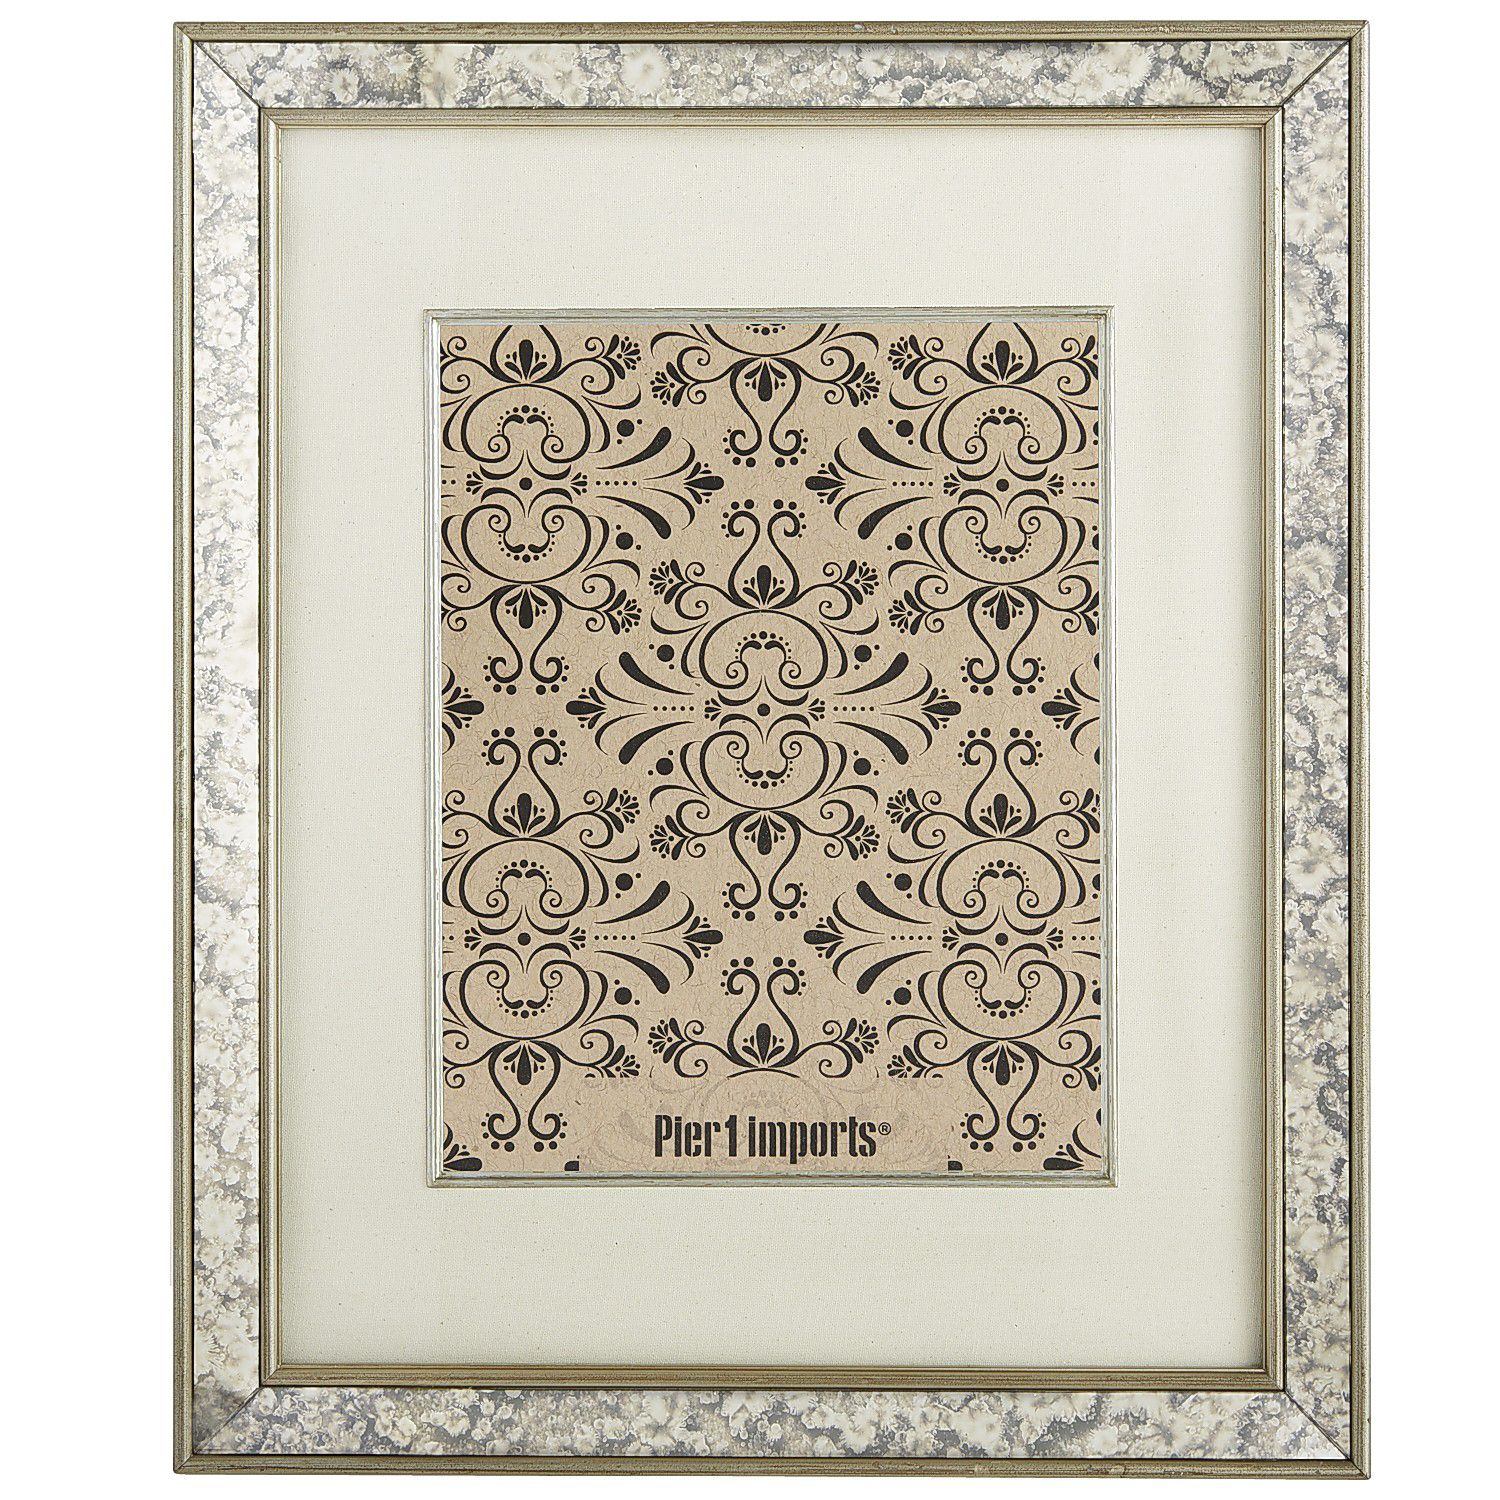 Antiqued mirror wall frame 11x14 decor picture frames antiqued mirror wall frame 11x14 jeuxipadfo Image collections